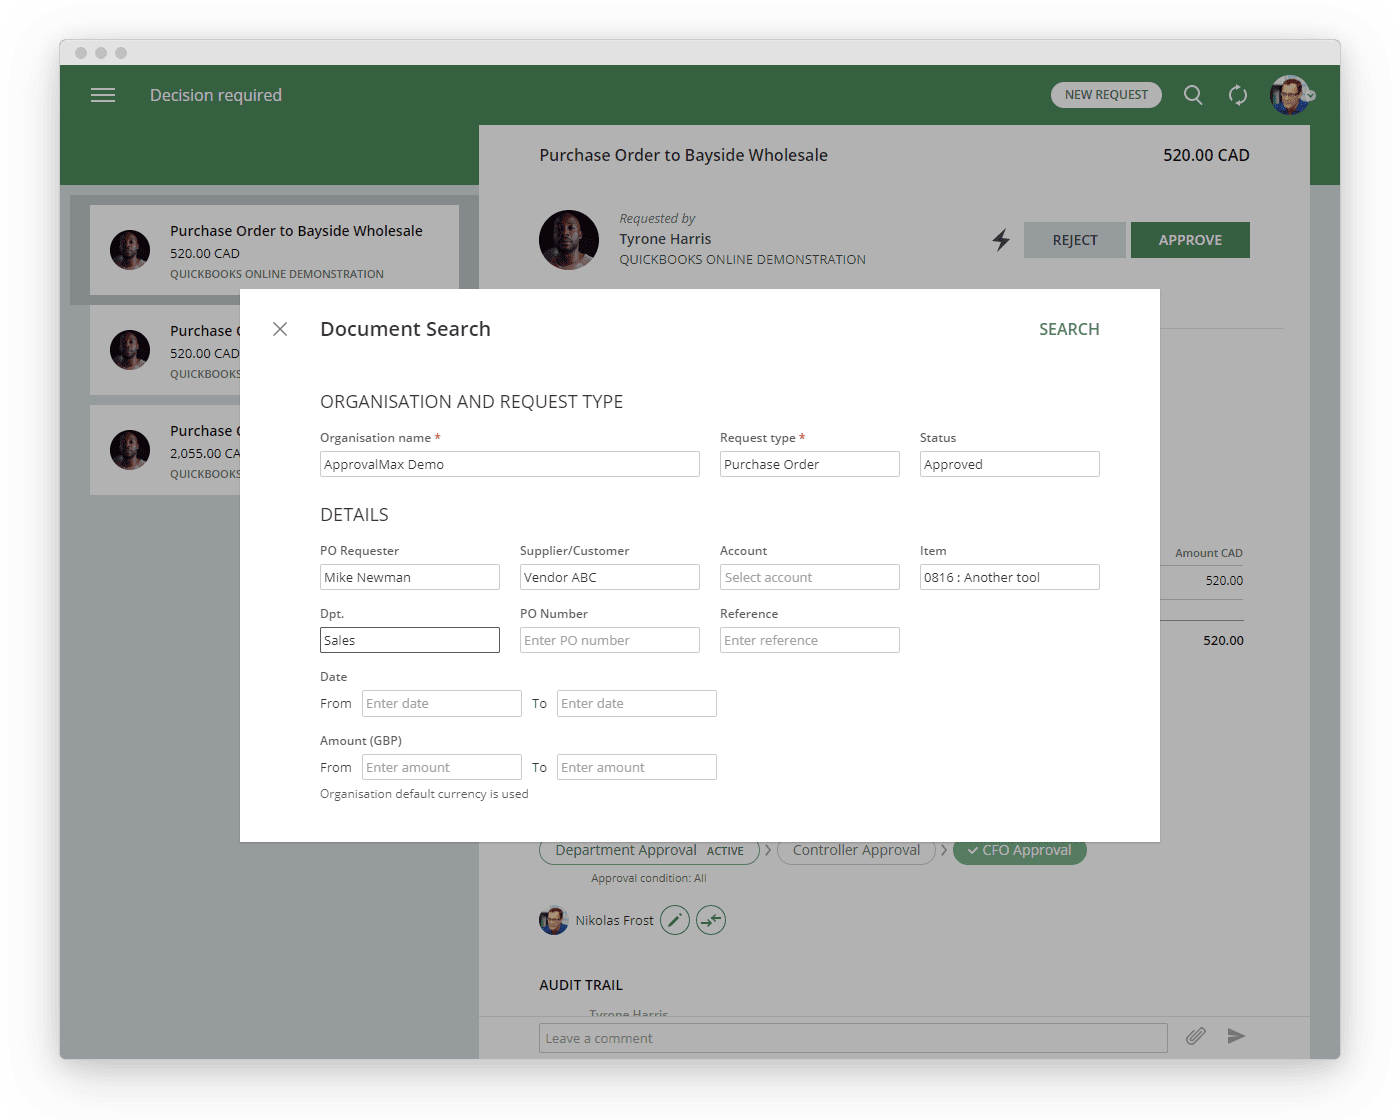 Sequential approval workflow for Purchase Order approval